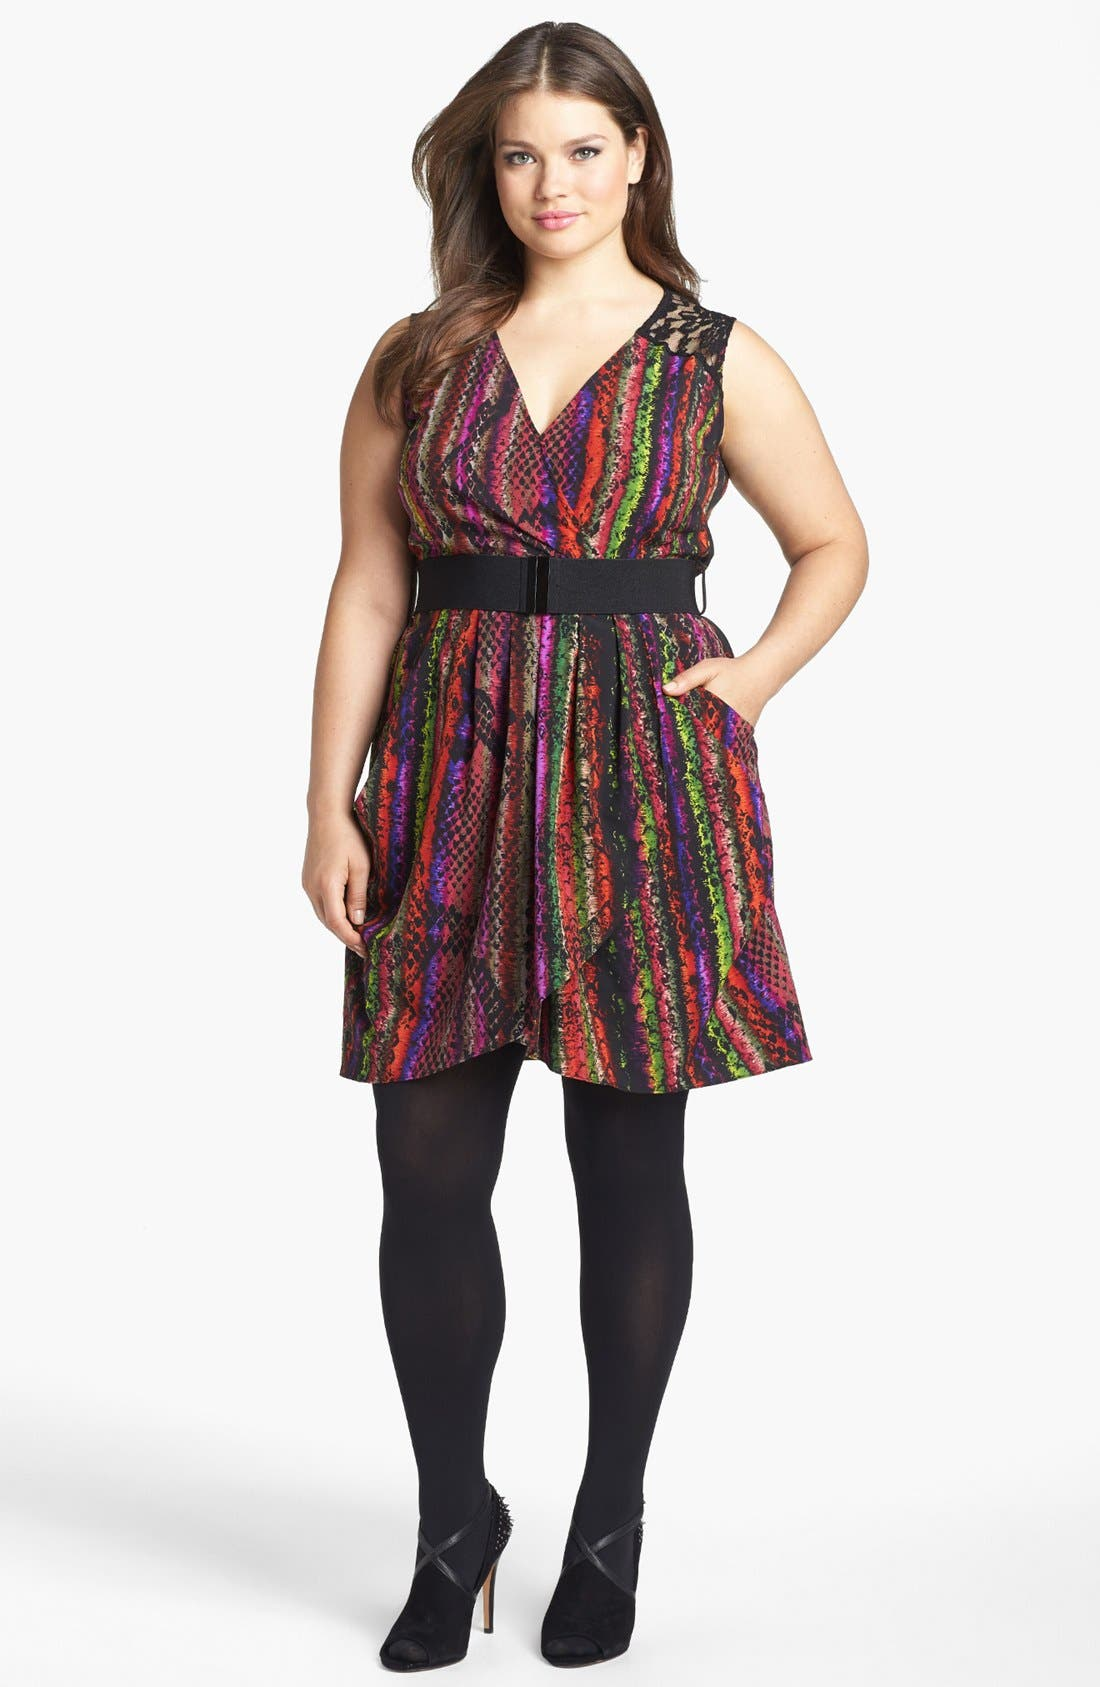 Main Image - City Chic 'Rainbow Serpent' Lace Trim Print Top(Plus Size)